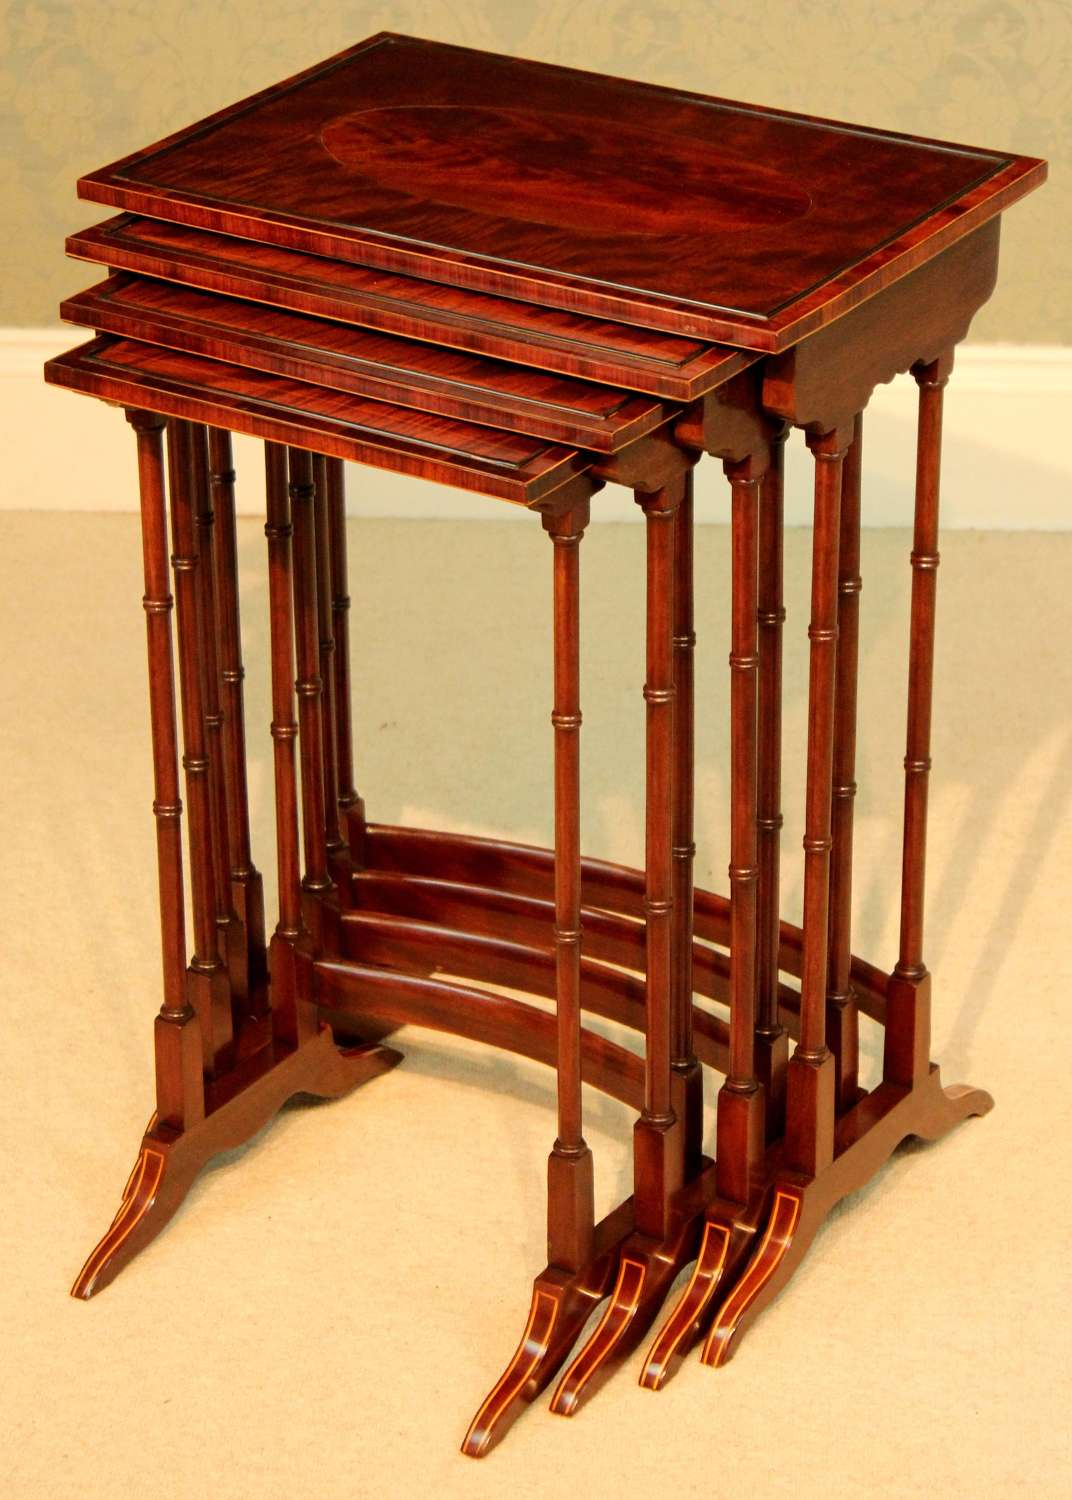 An Equisite Late Victorian Mahogany Inlaid Quartetto Nest of Tables